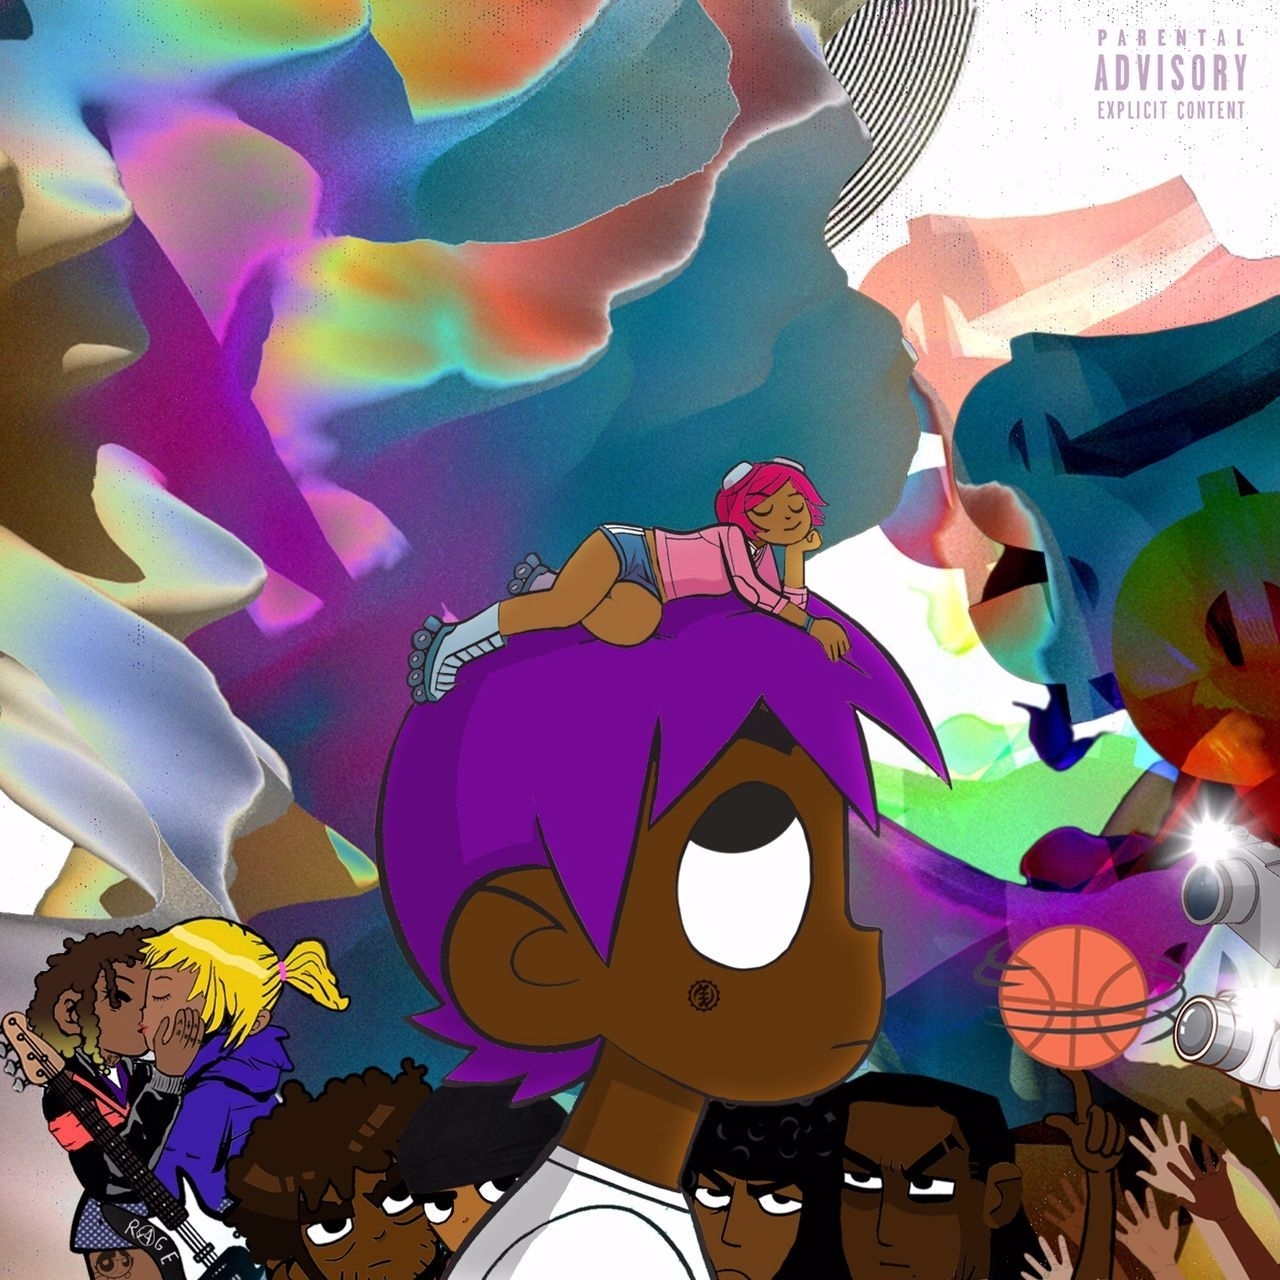 lil uzi vert - money longer album cover | good pics | pinterest